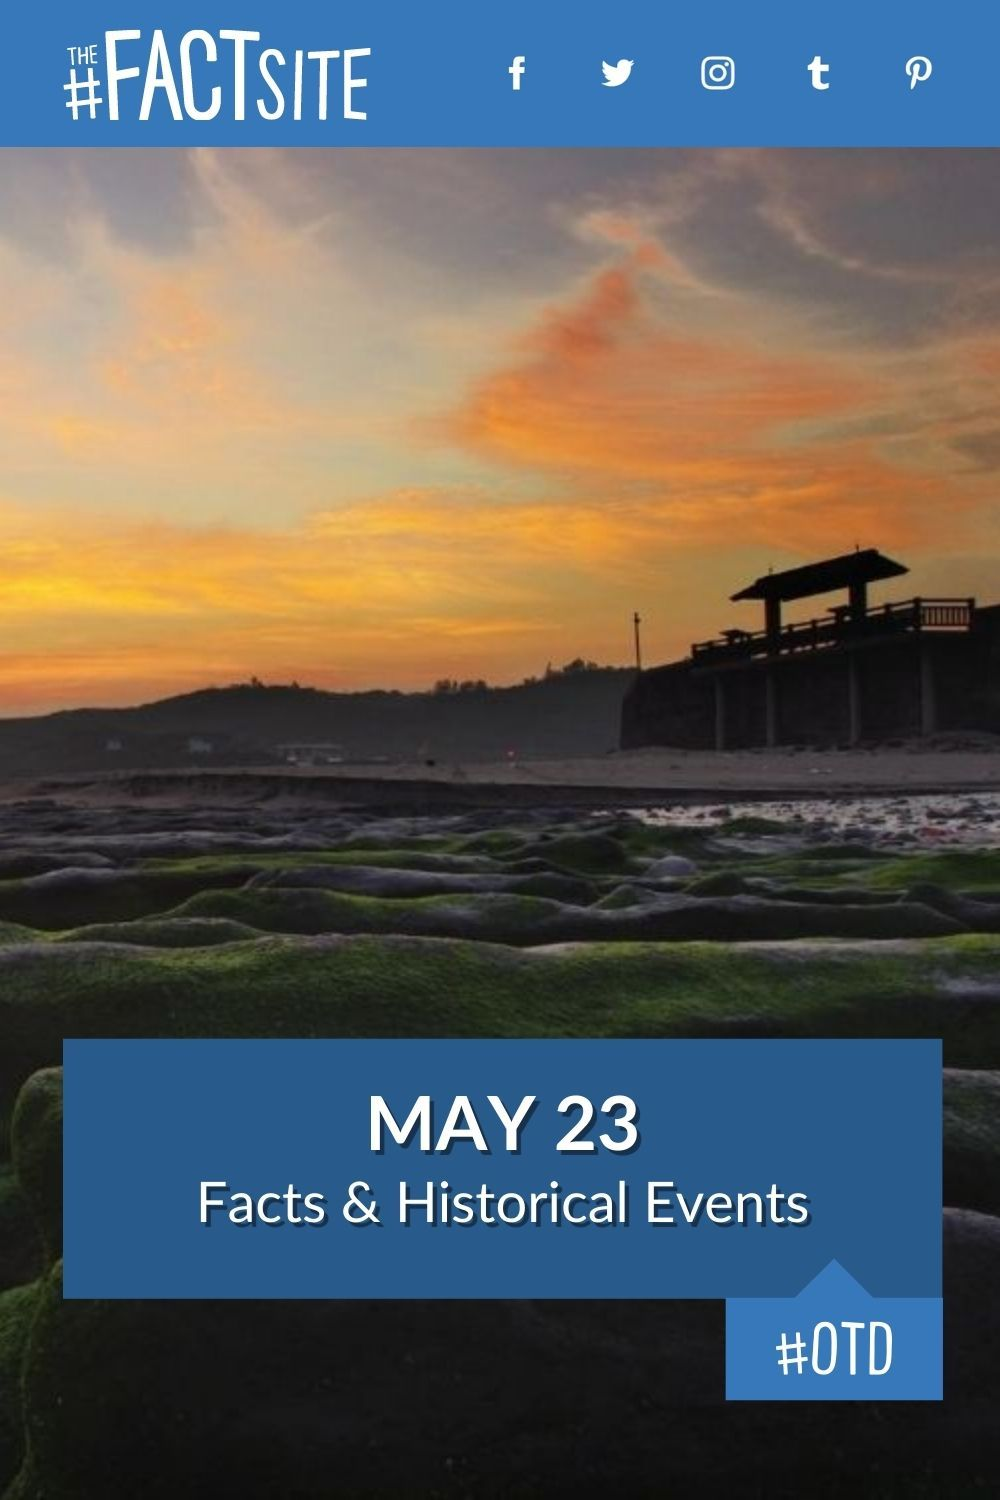 Facts & Historic Events That Happened on May 23